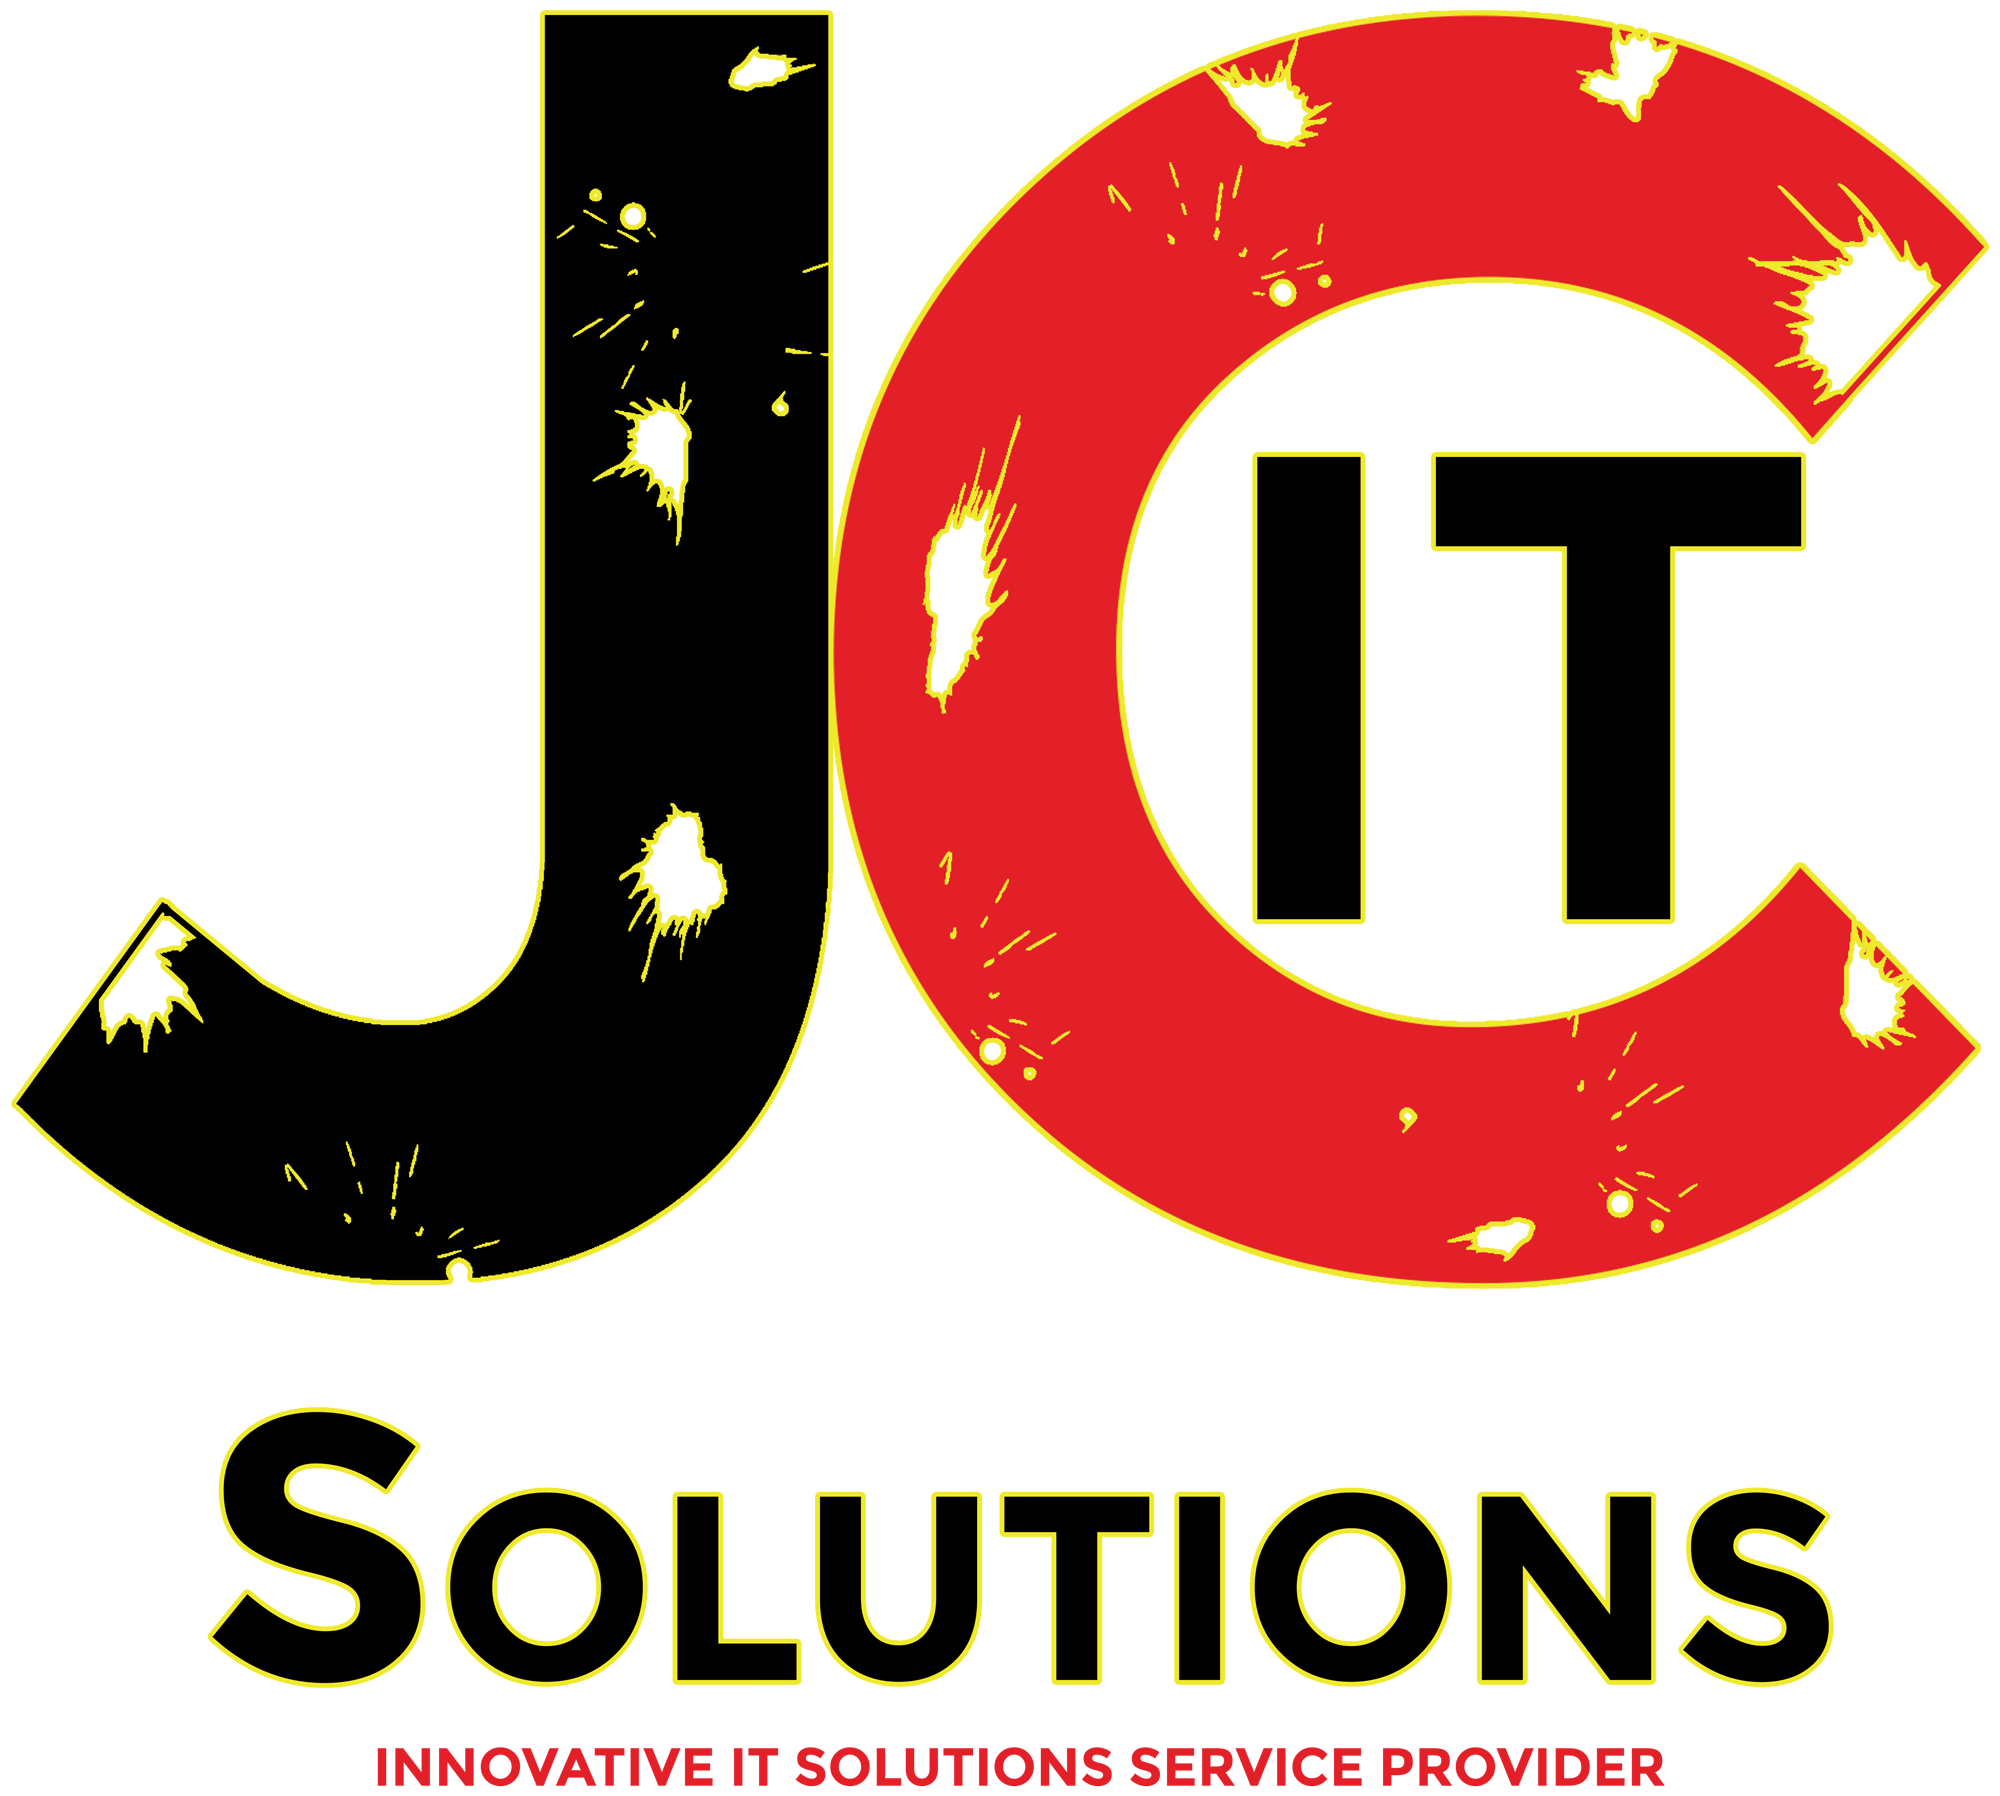 JC IT Solutions